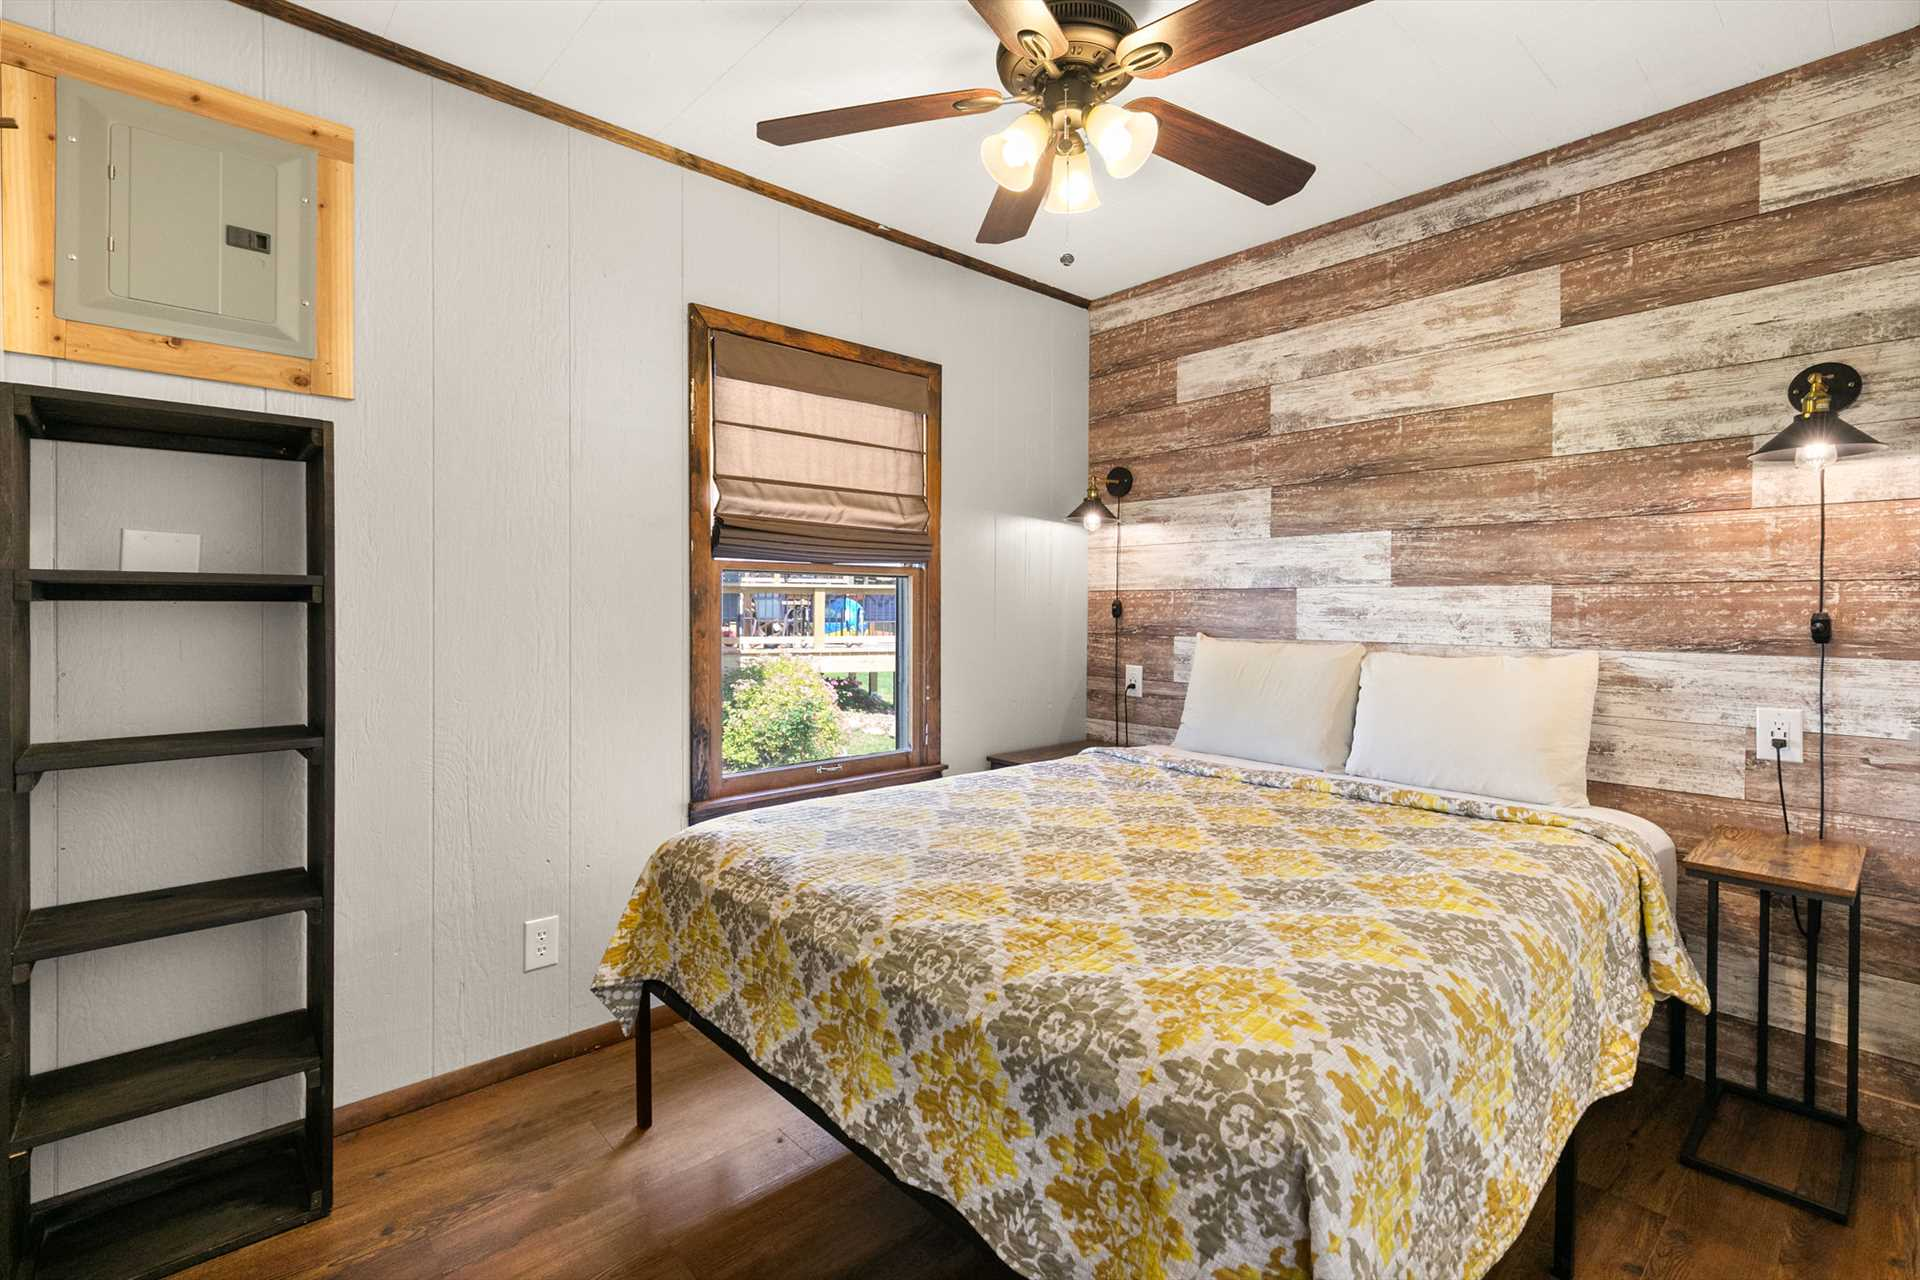 The first of two bedrooms has a queen-size bed.